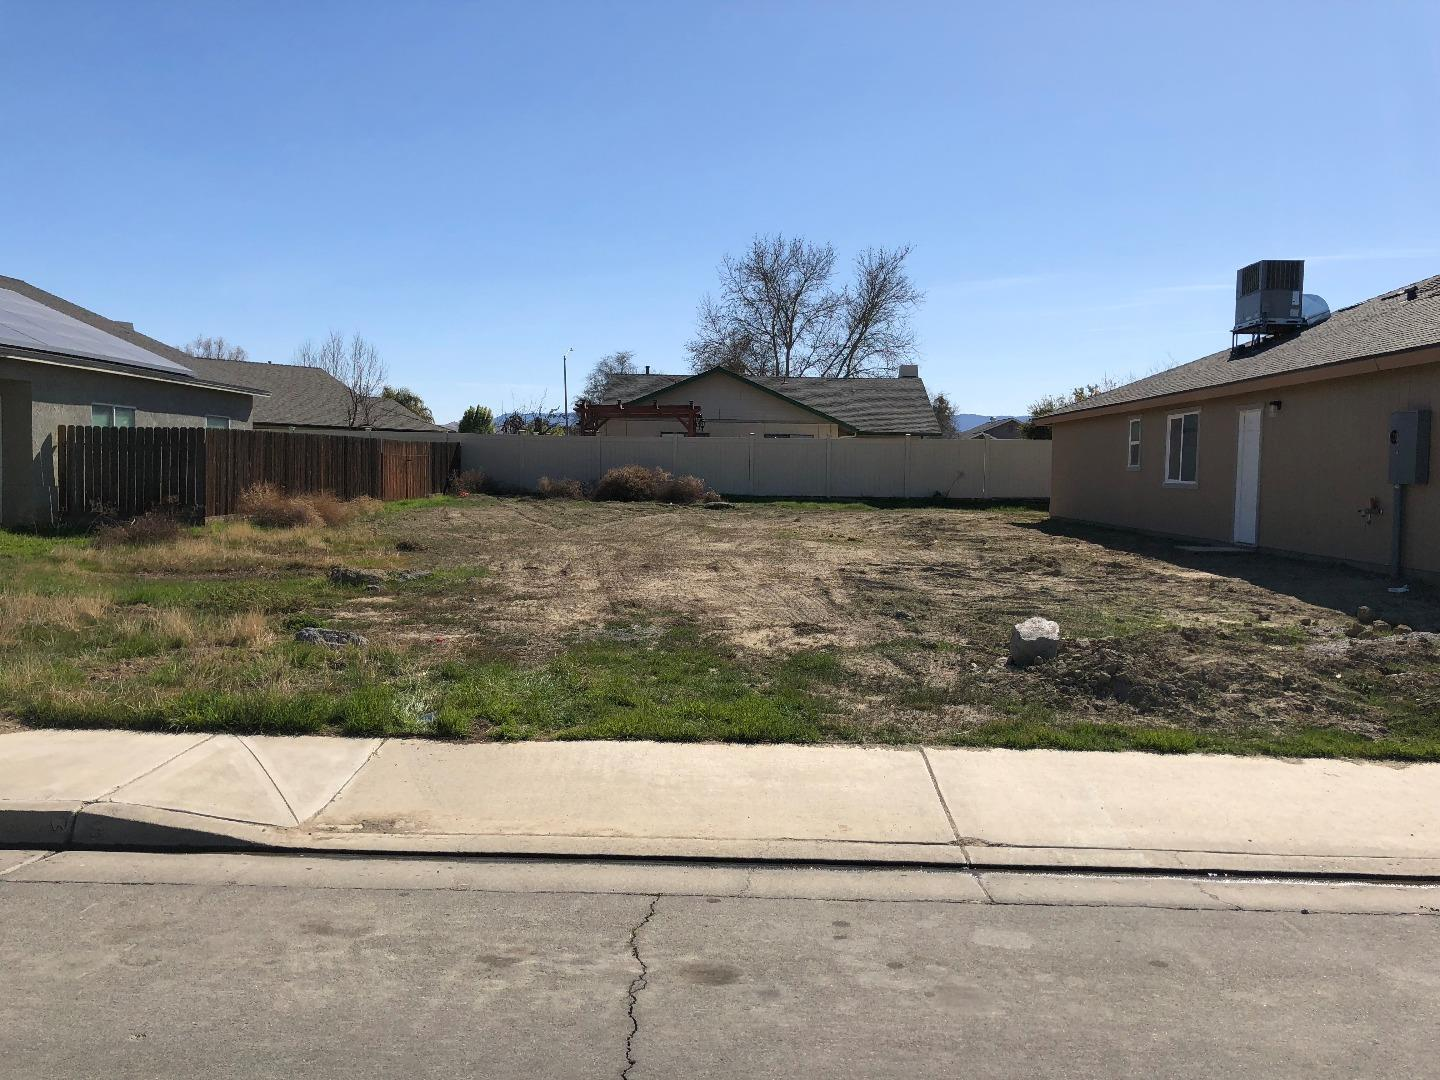 Land for Sale at 1730 Willow Springs Avenue 1730 Willow Springs Avenue Coalinga, California 93210 United States